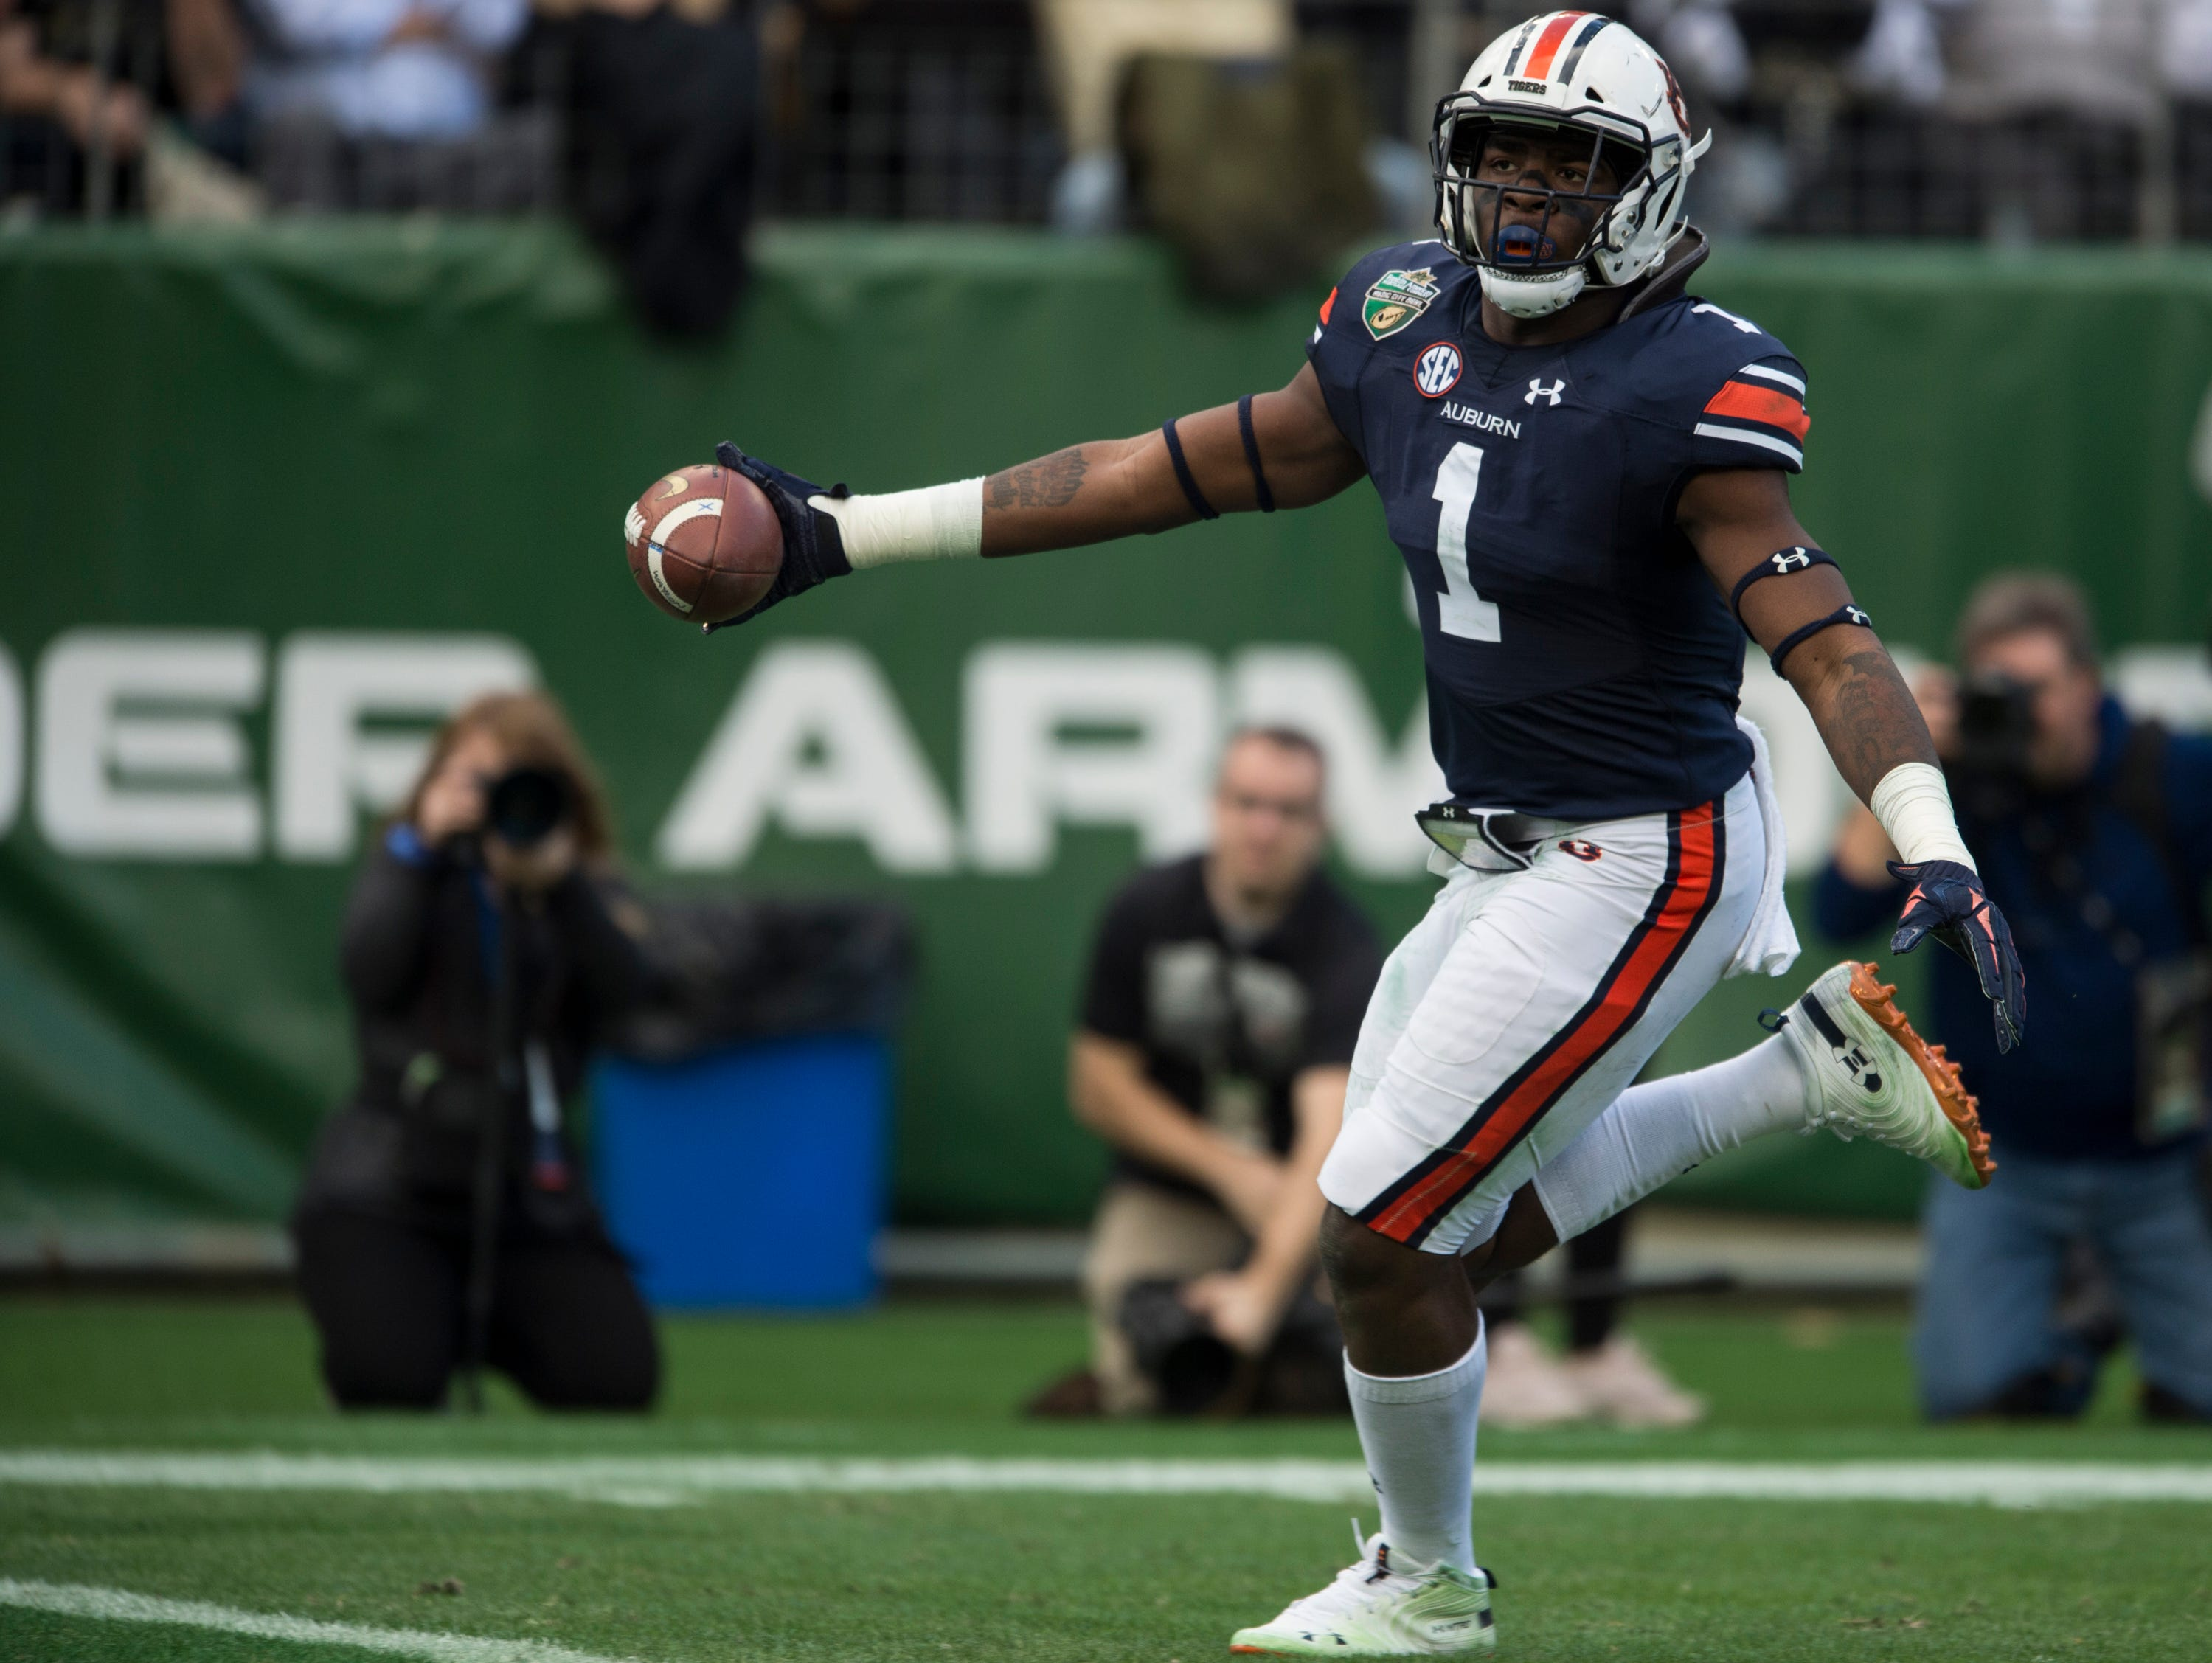 Auburn defensive lineman Big Kat Bryant (1) jogs into the end zone after intercepting a deflected pass during the Music City Bowl at Nissan Stadium in Nashville, Tenn., on Friday, Dec. 28, 2018. Auburn leads Purdue 56-7 at halftime.